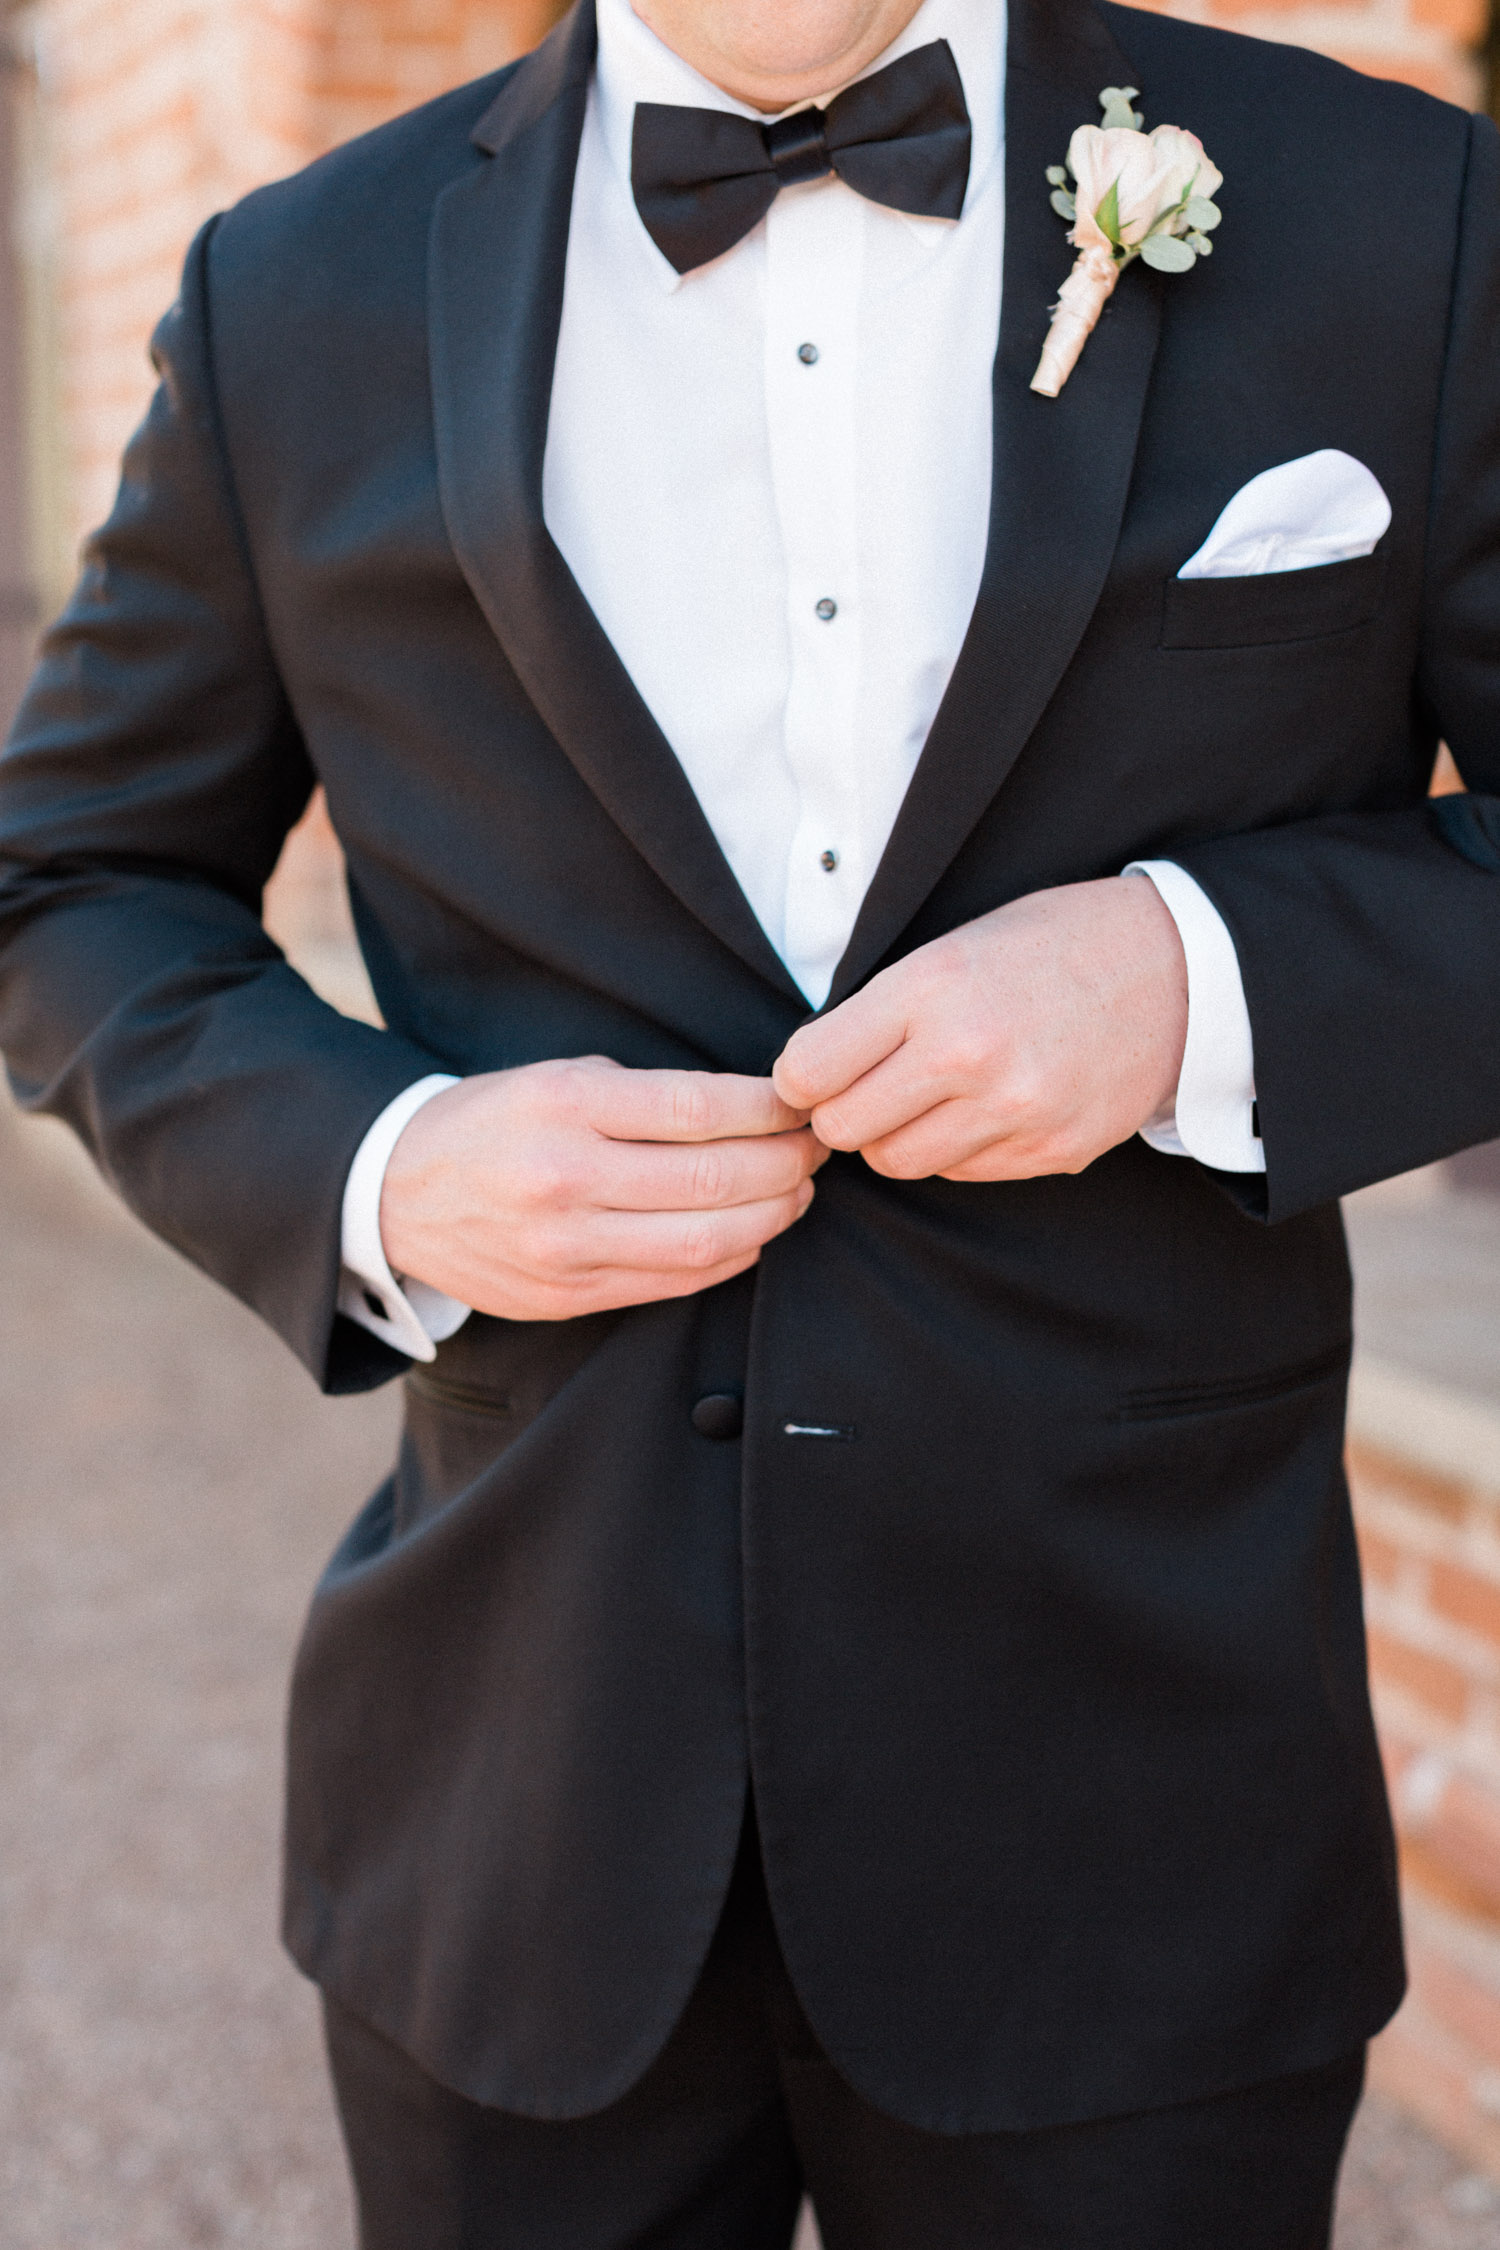 Groom buttoning up black tuxedo